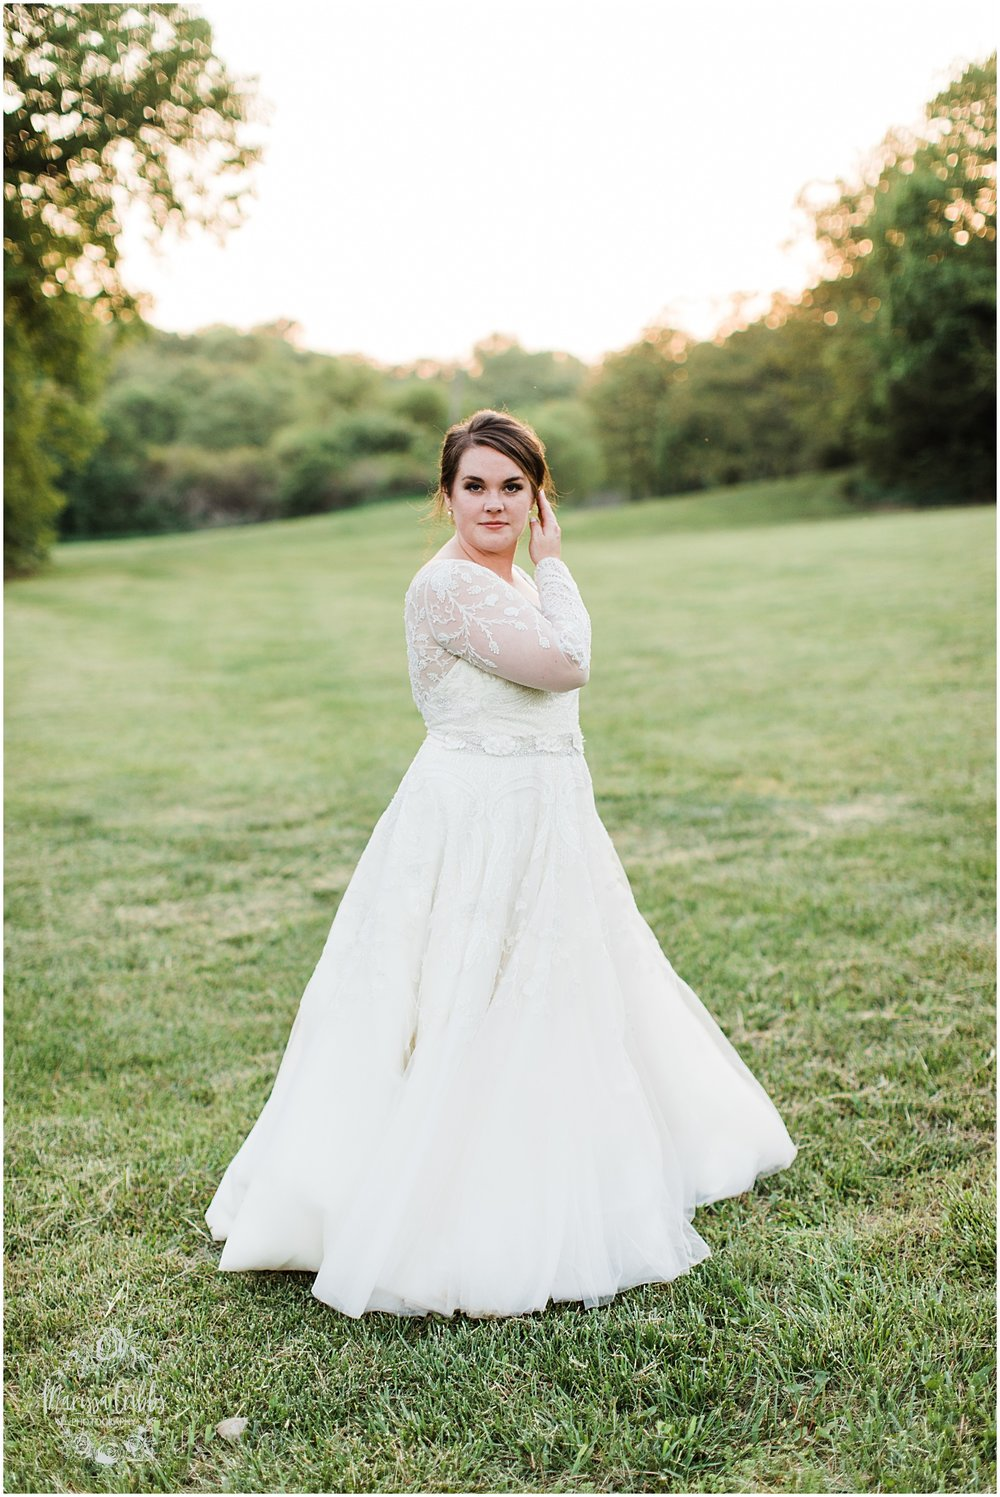 GORBY WEDDING | MARISSA CRIBBS PHOTOGRAPHY_5133.jpg